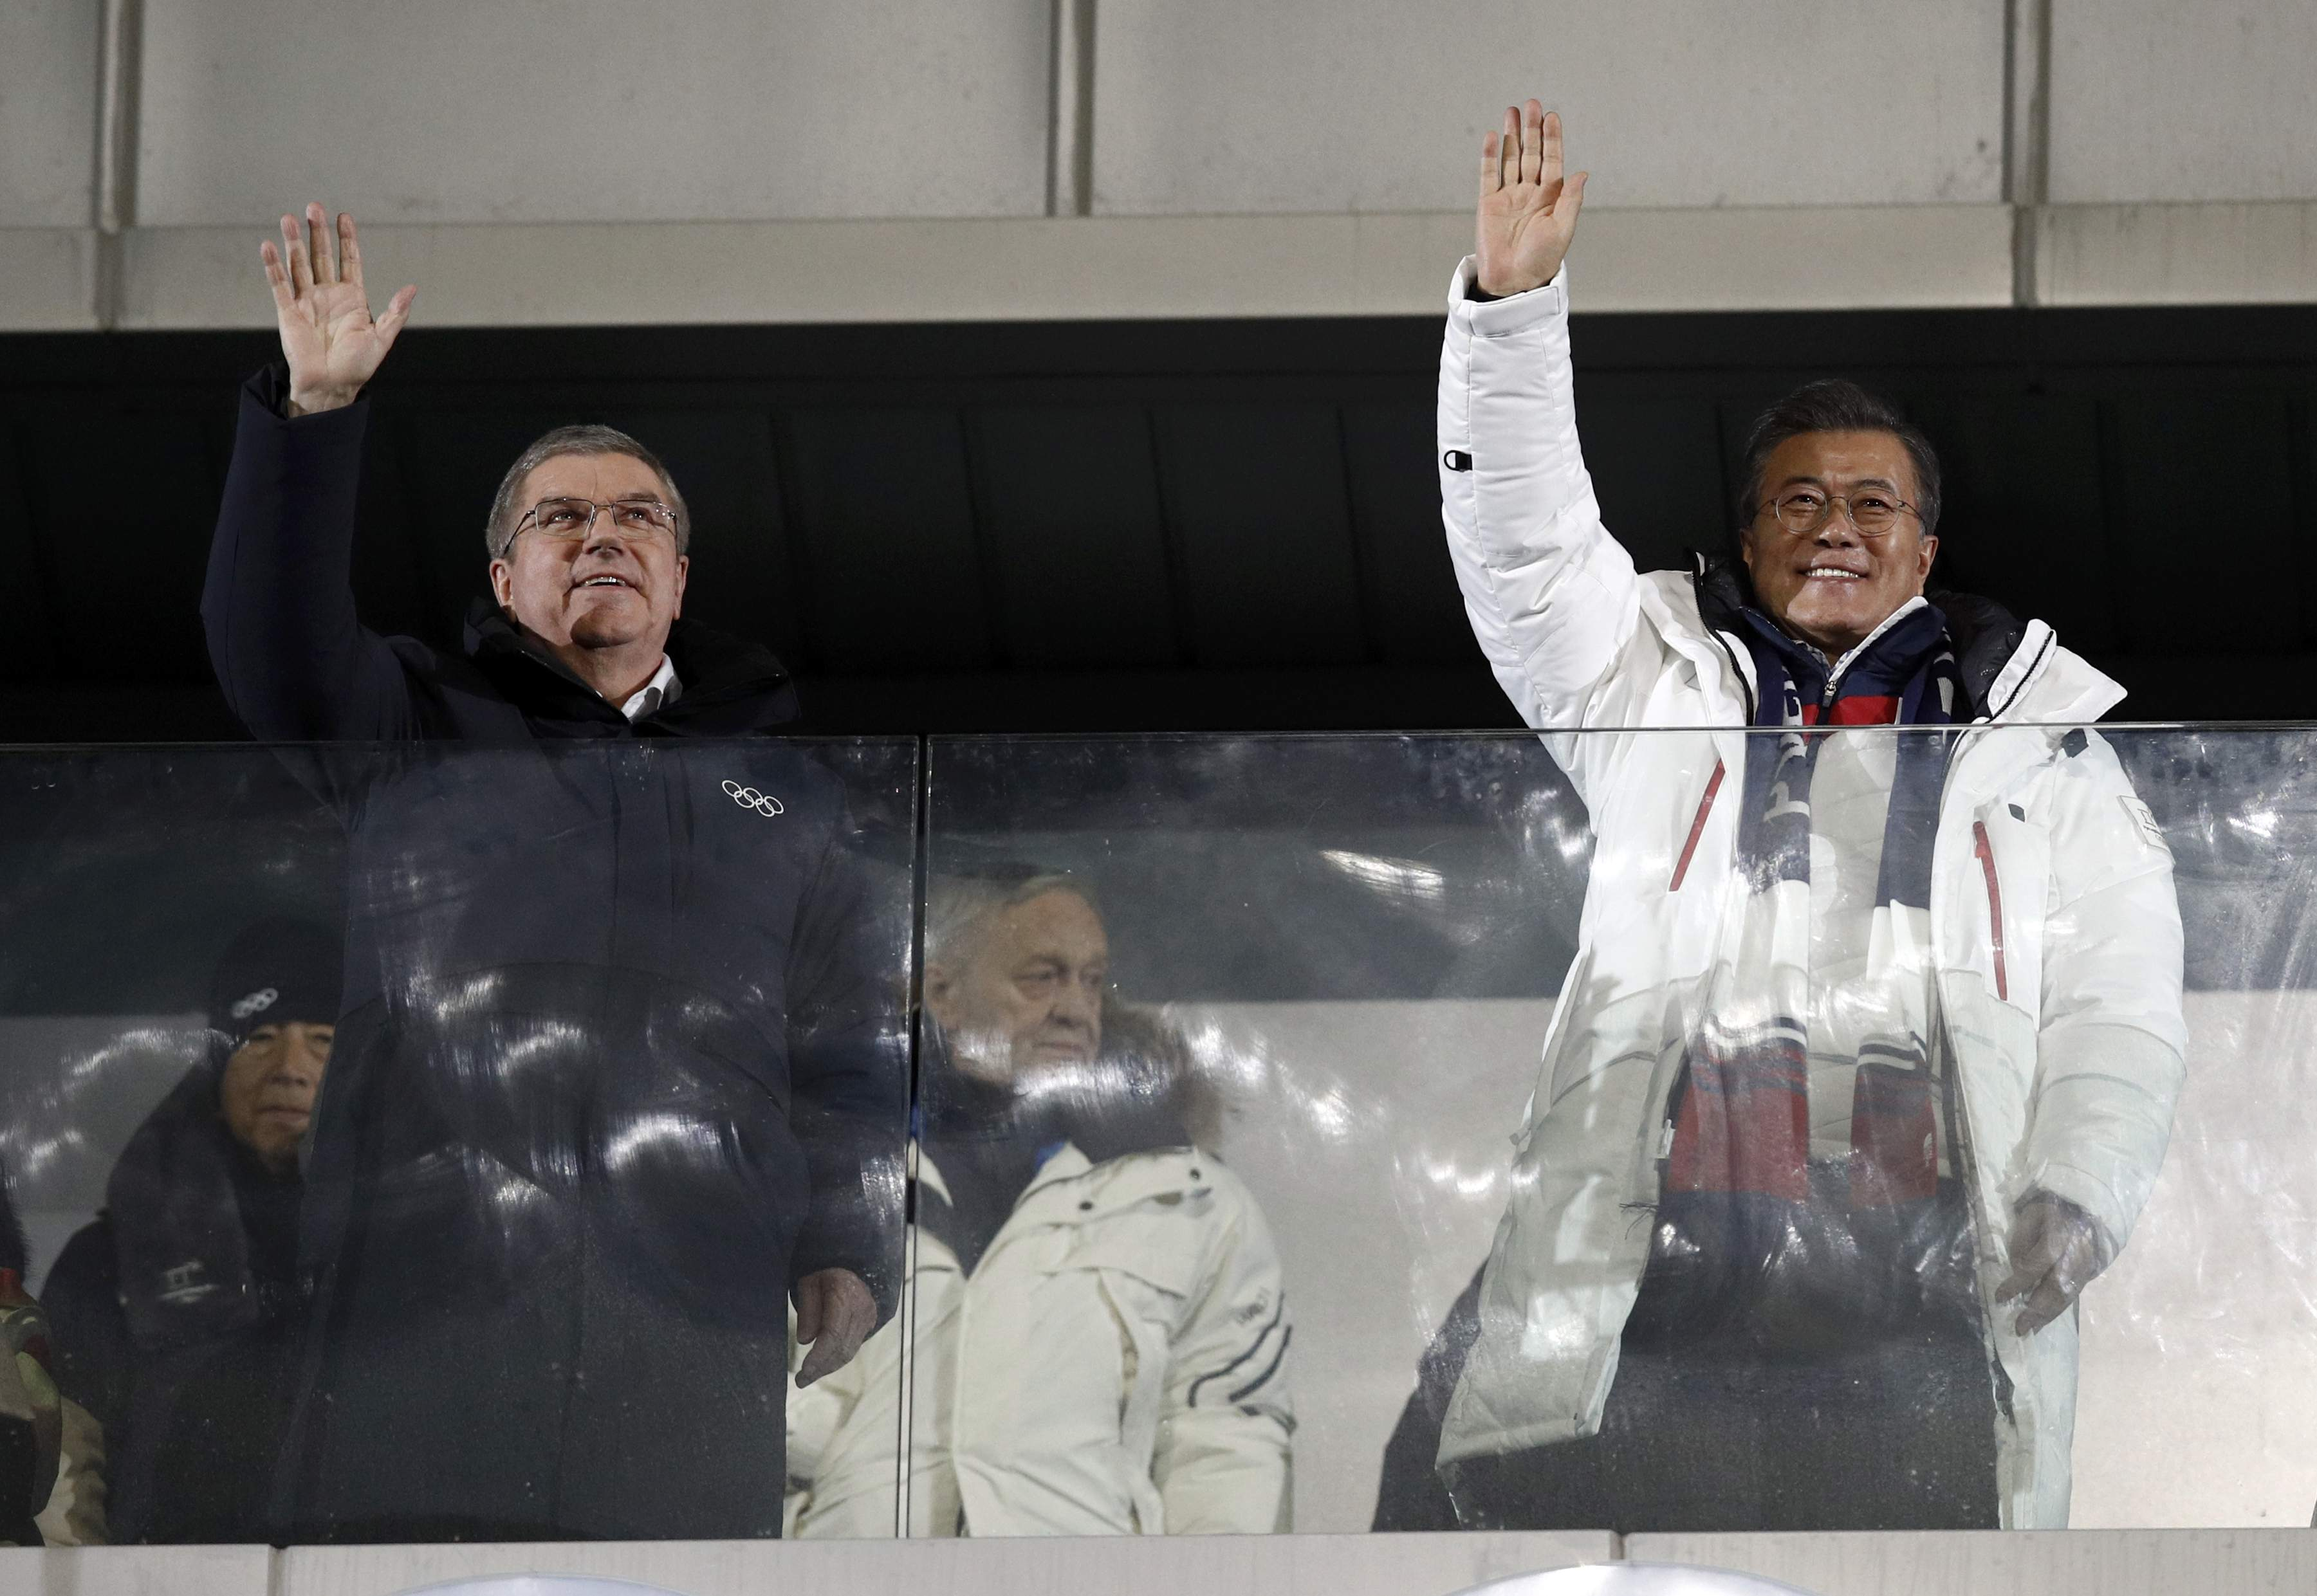 IOC president Thomas Bach and South Korean President Moon Jae-in during the opening ceremony of the 2018 Winter Olympics in Pyeongchang, South Korea, Friday, Feb. 9, 2018. (AP Photo/Jae C. Hong)